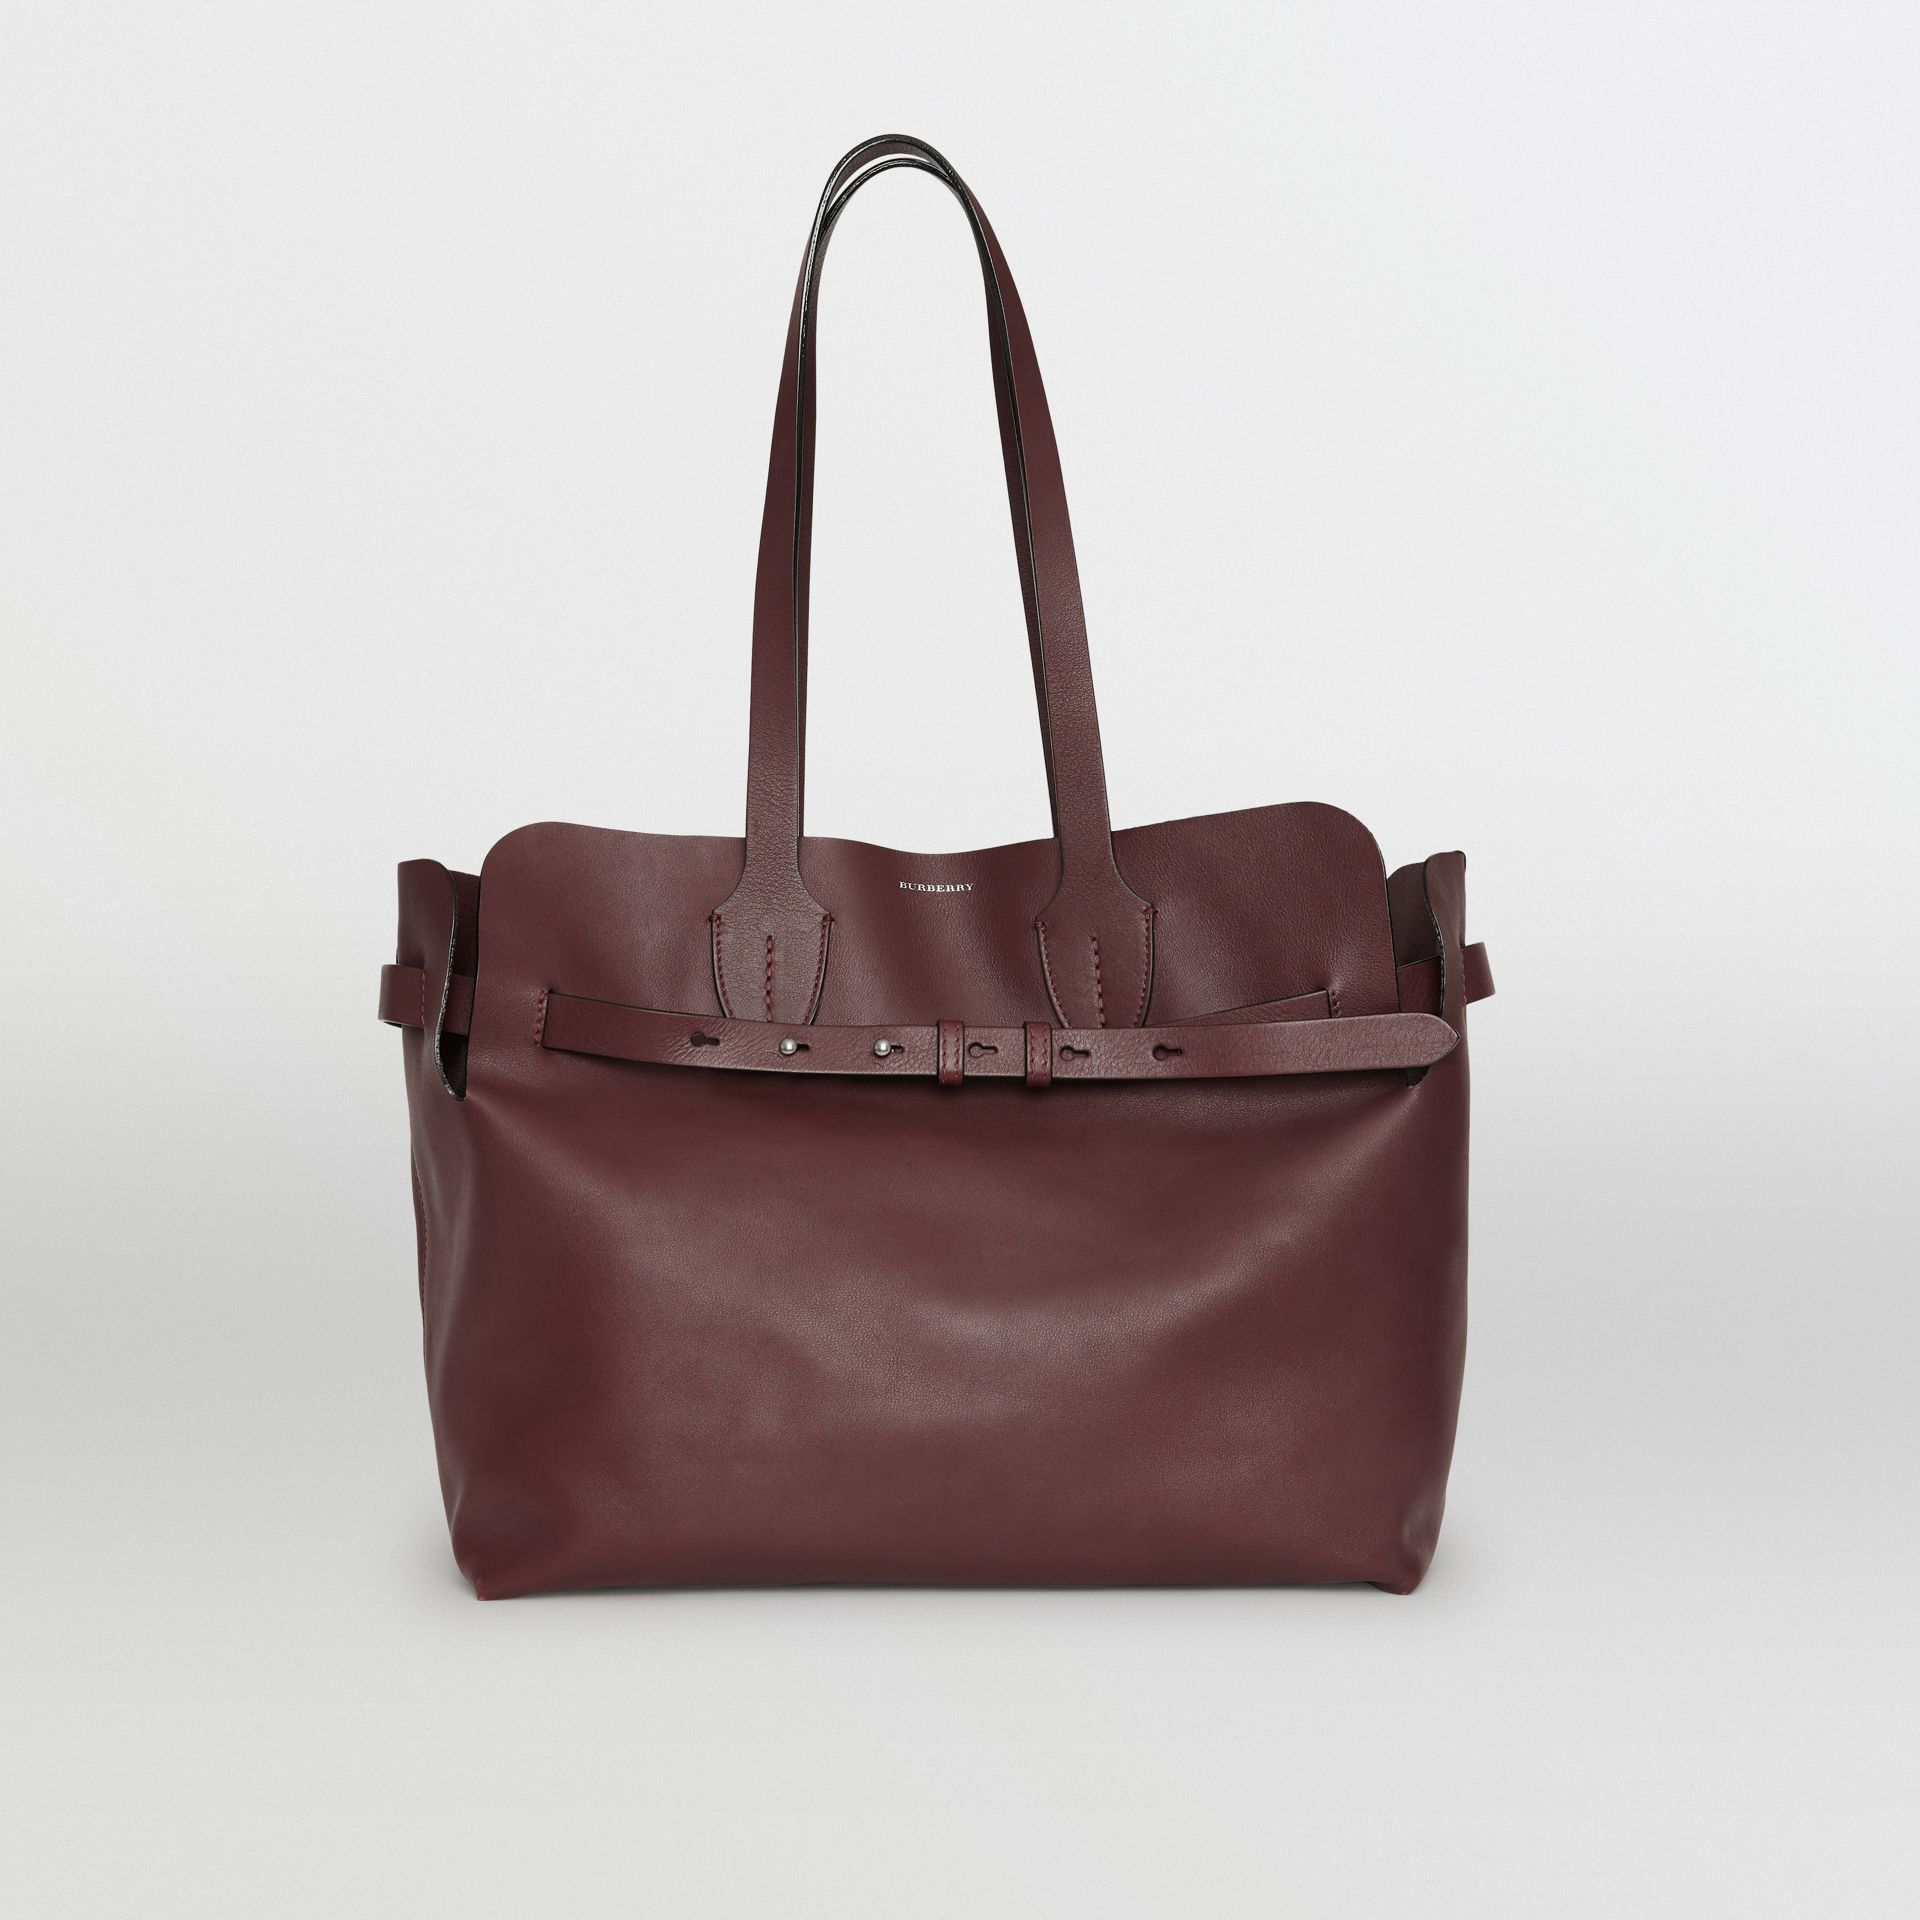 Sac The Belt moyen en cuir doux (Bordeaux Intense) - Femme | Burberry Canada - photo de la galerie 0